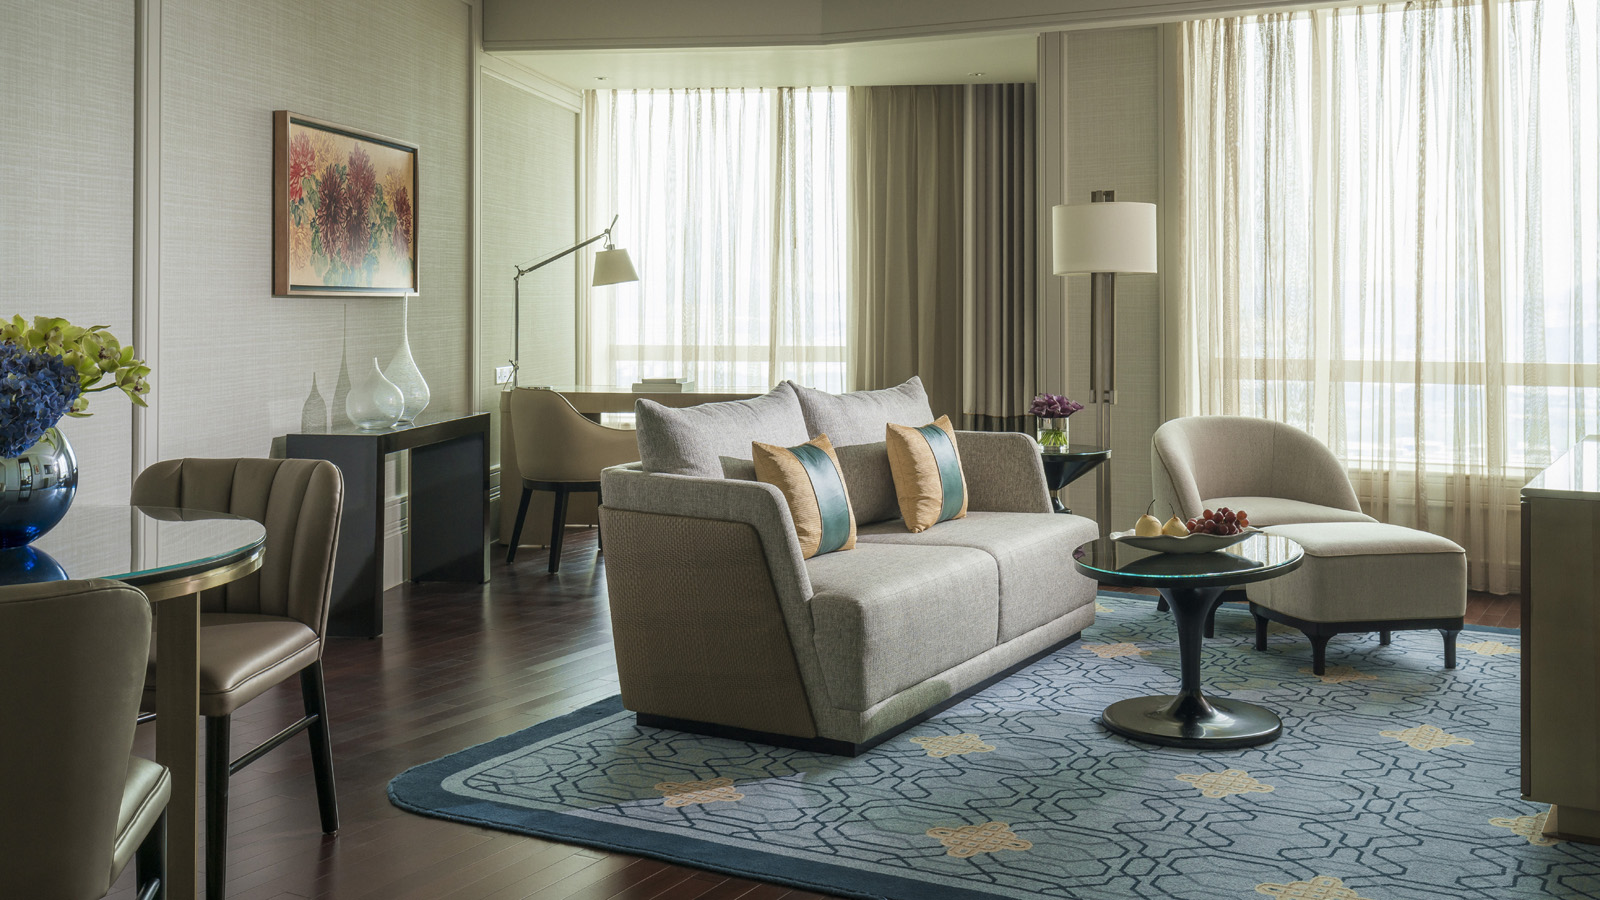 Executive Suites at Four Seasons Hotel Macau, a Luxury Hotel in Macau